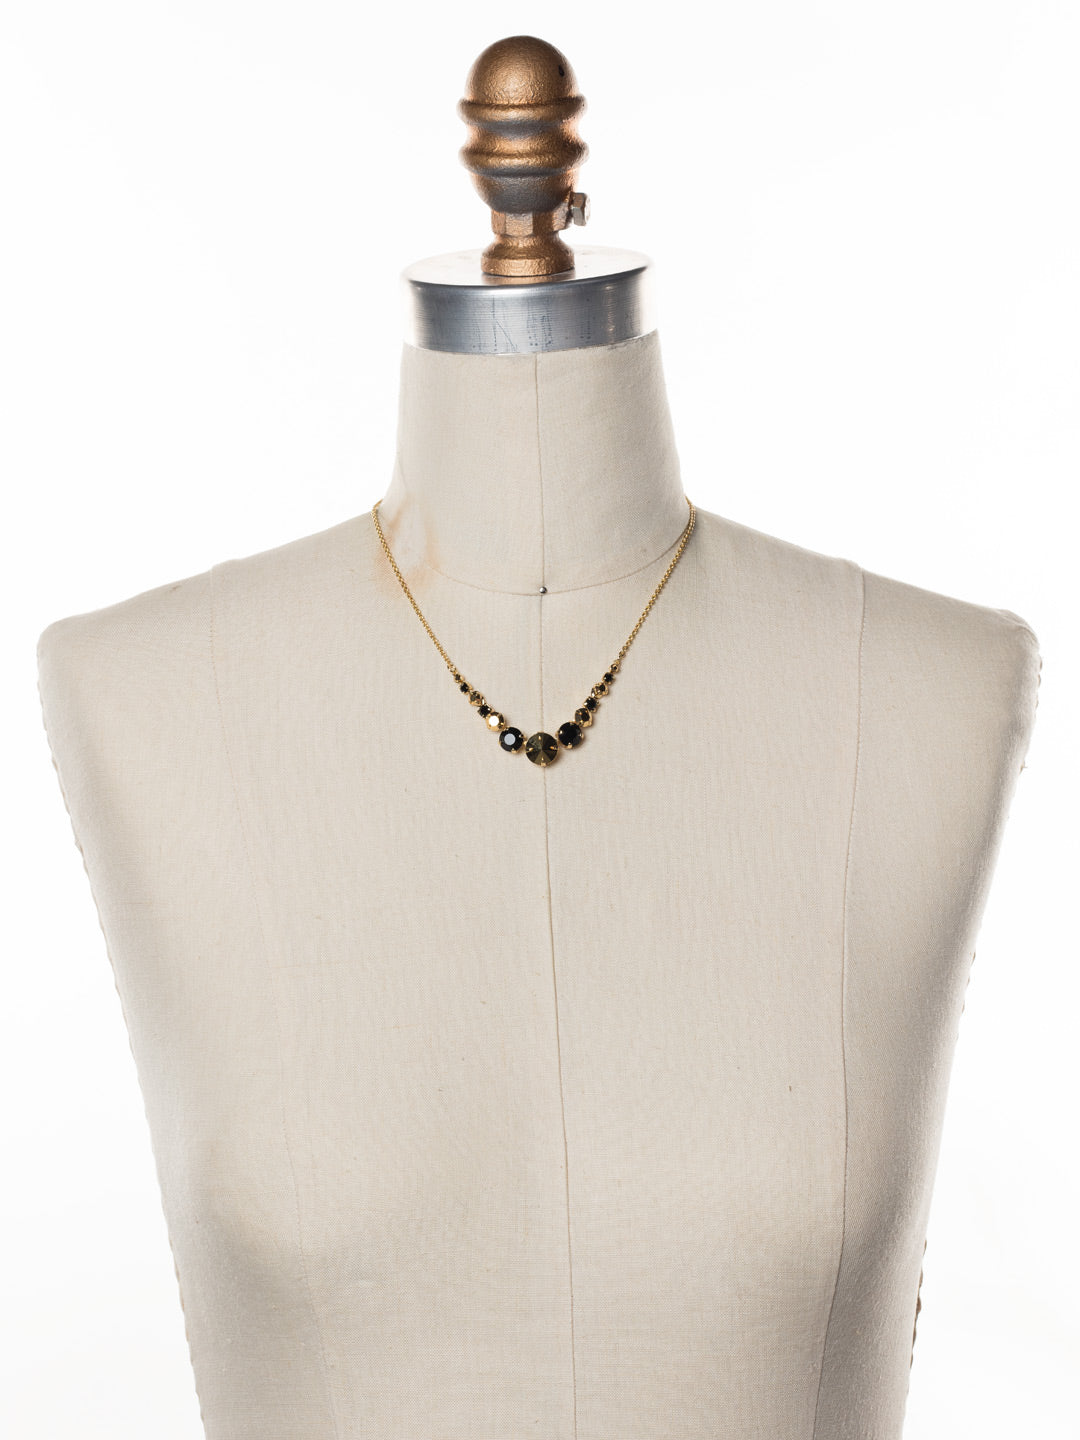 Delicate Round Tennis Necklace - NCQ14BGGTR